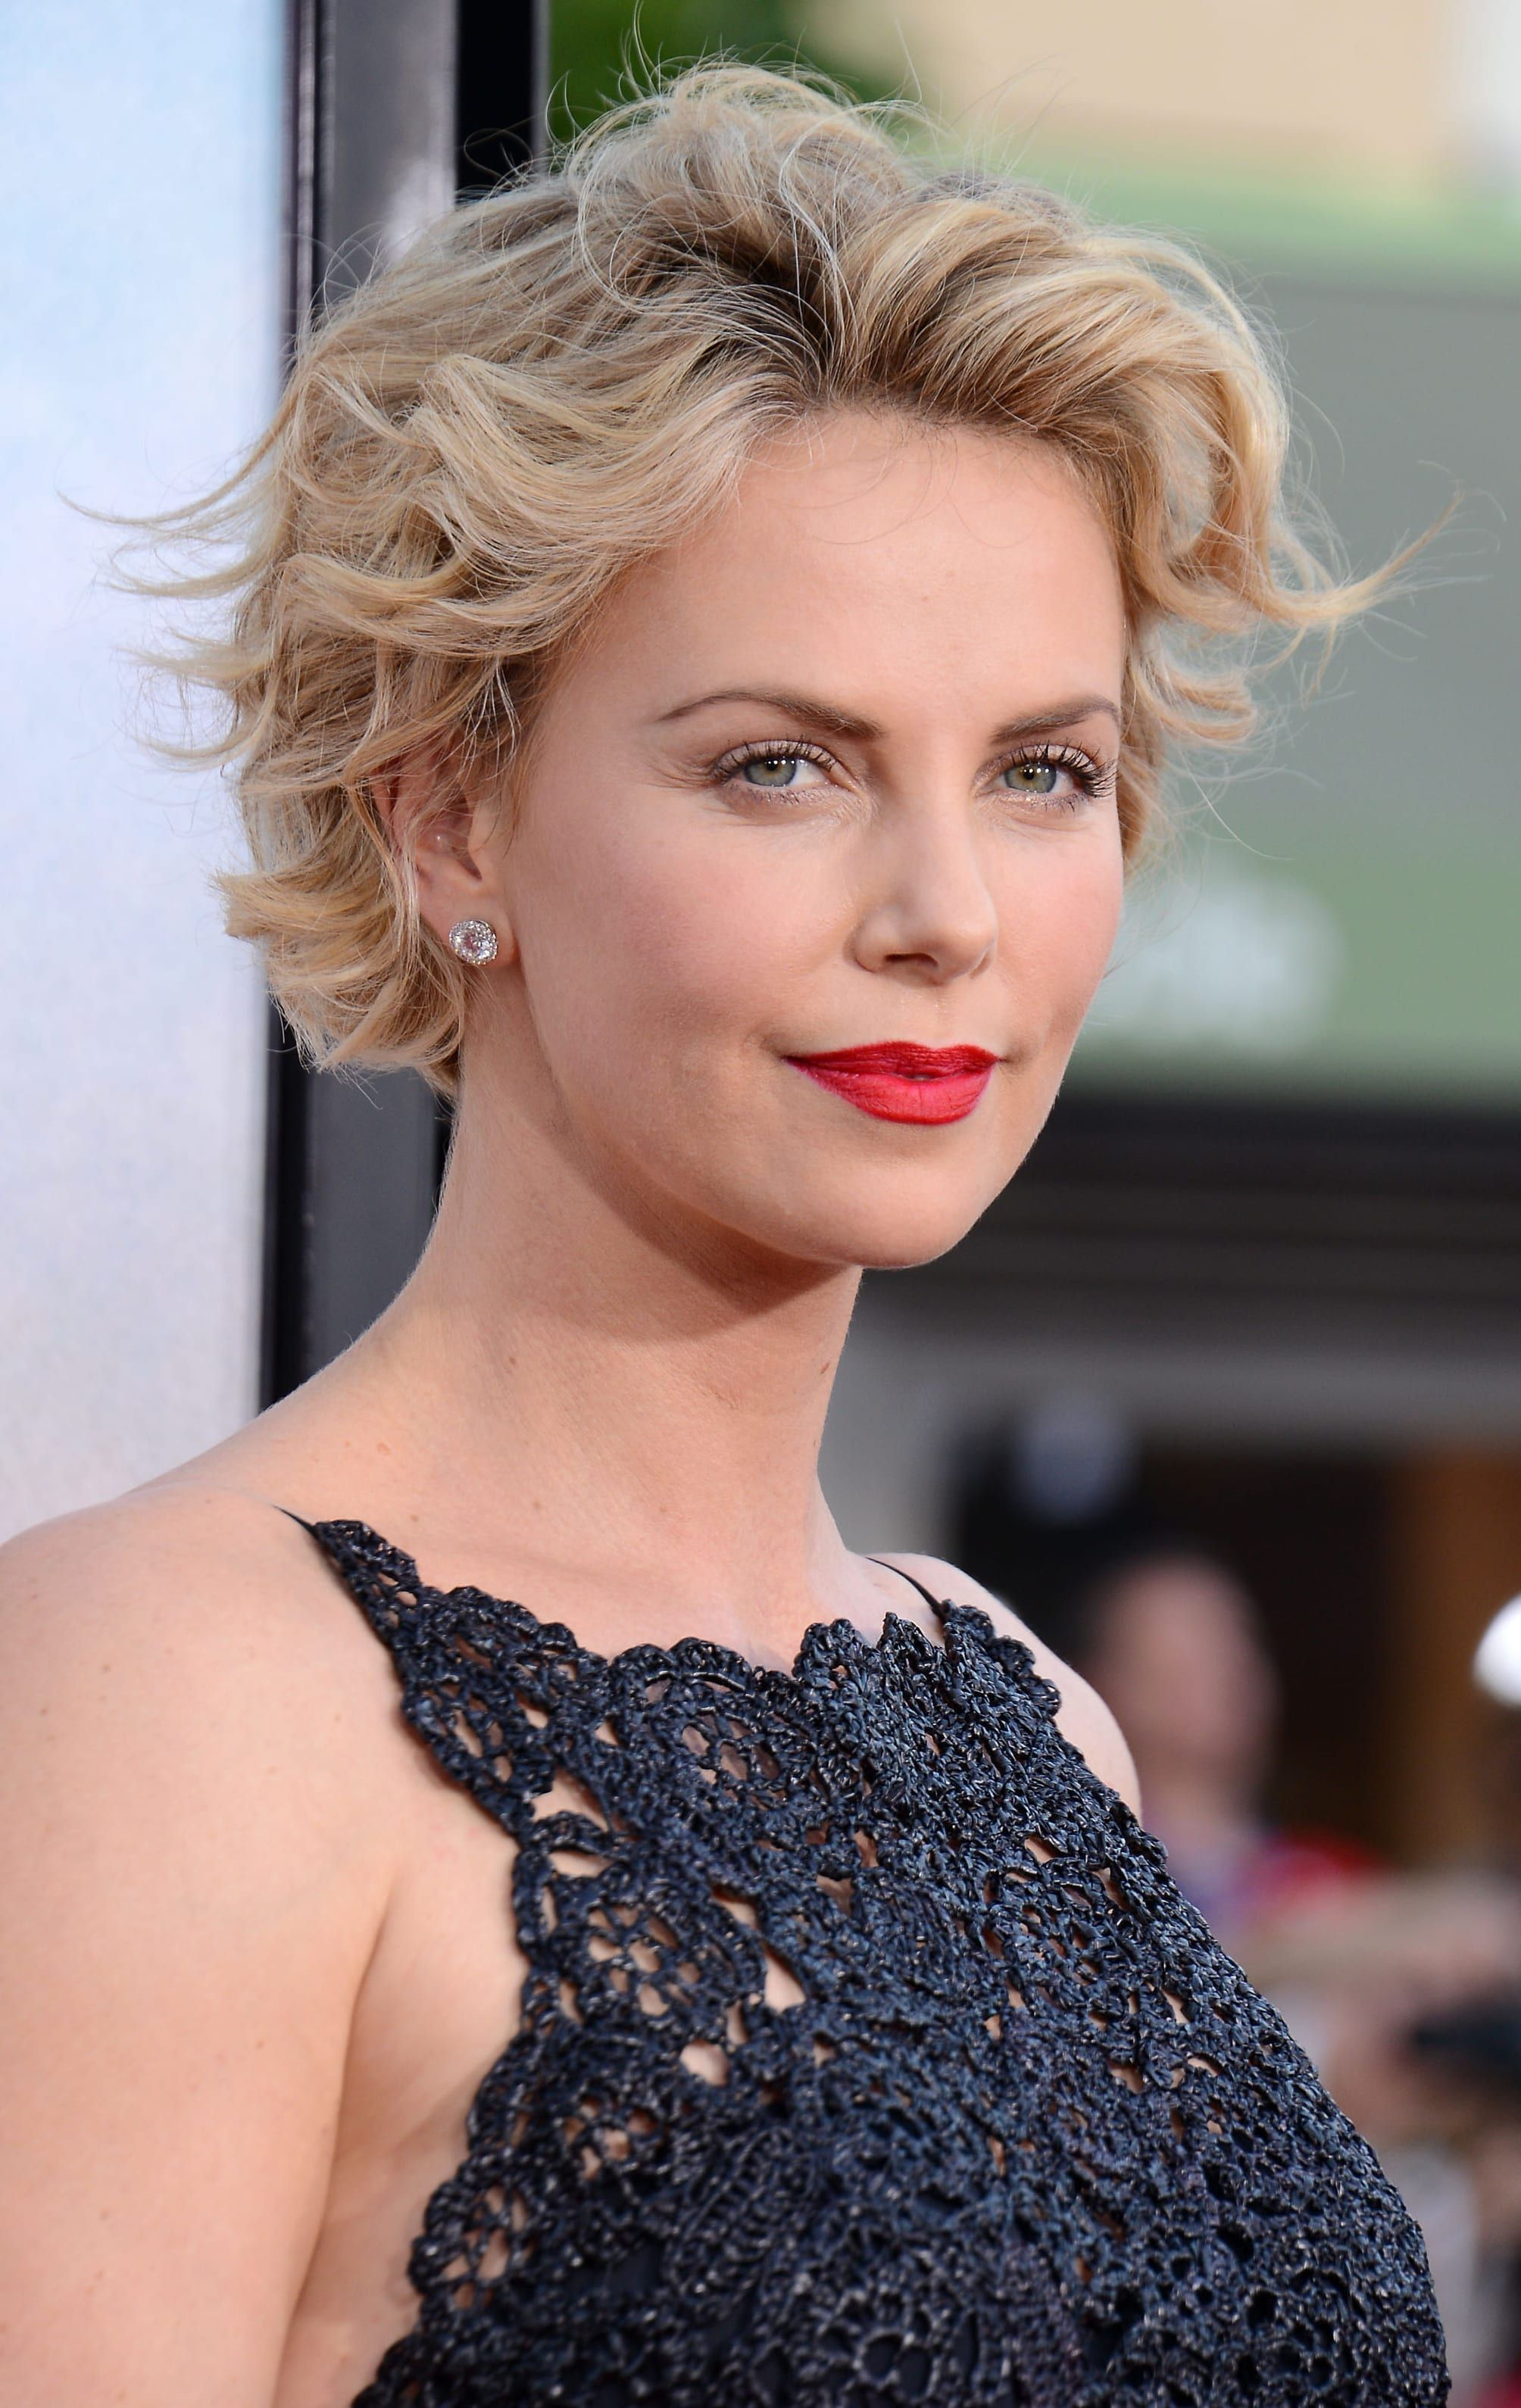 30 Must Try Hairstyles For Women Over 40 Haircut Inspiration Charlize Theron Short Hair Oval Face Hairstyles Womens Hairstyles